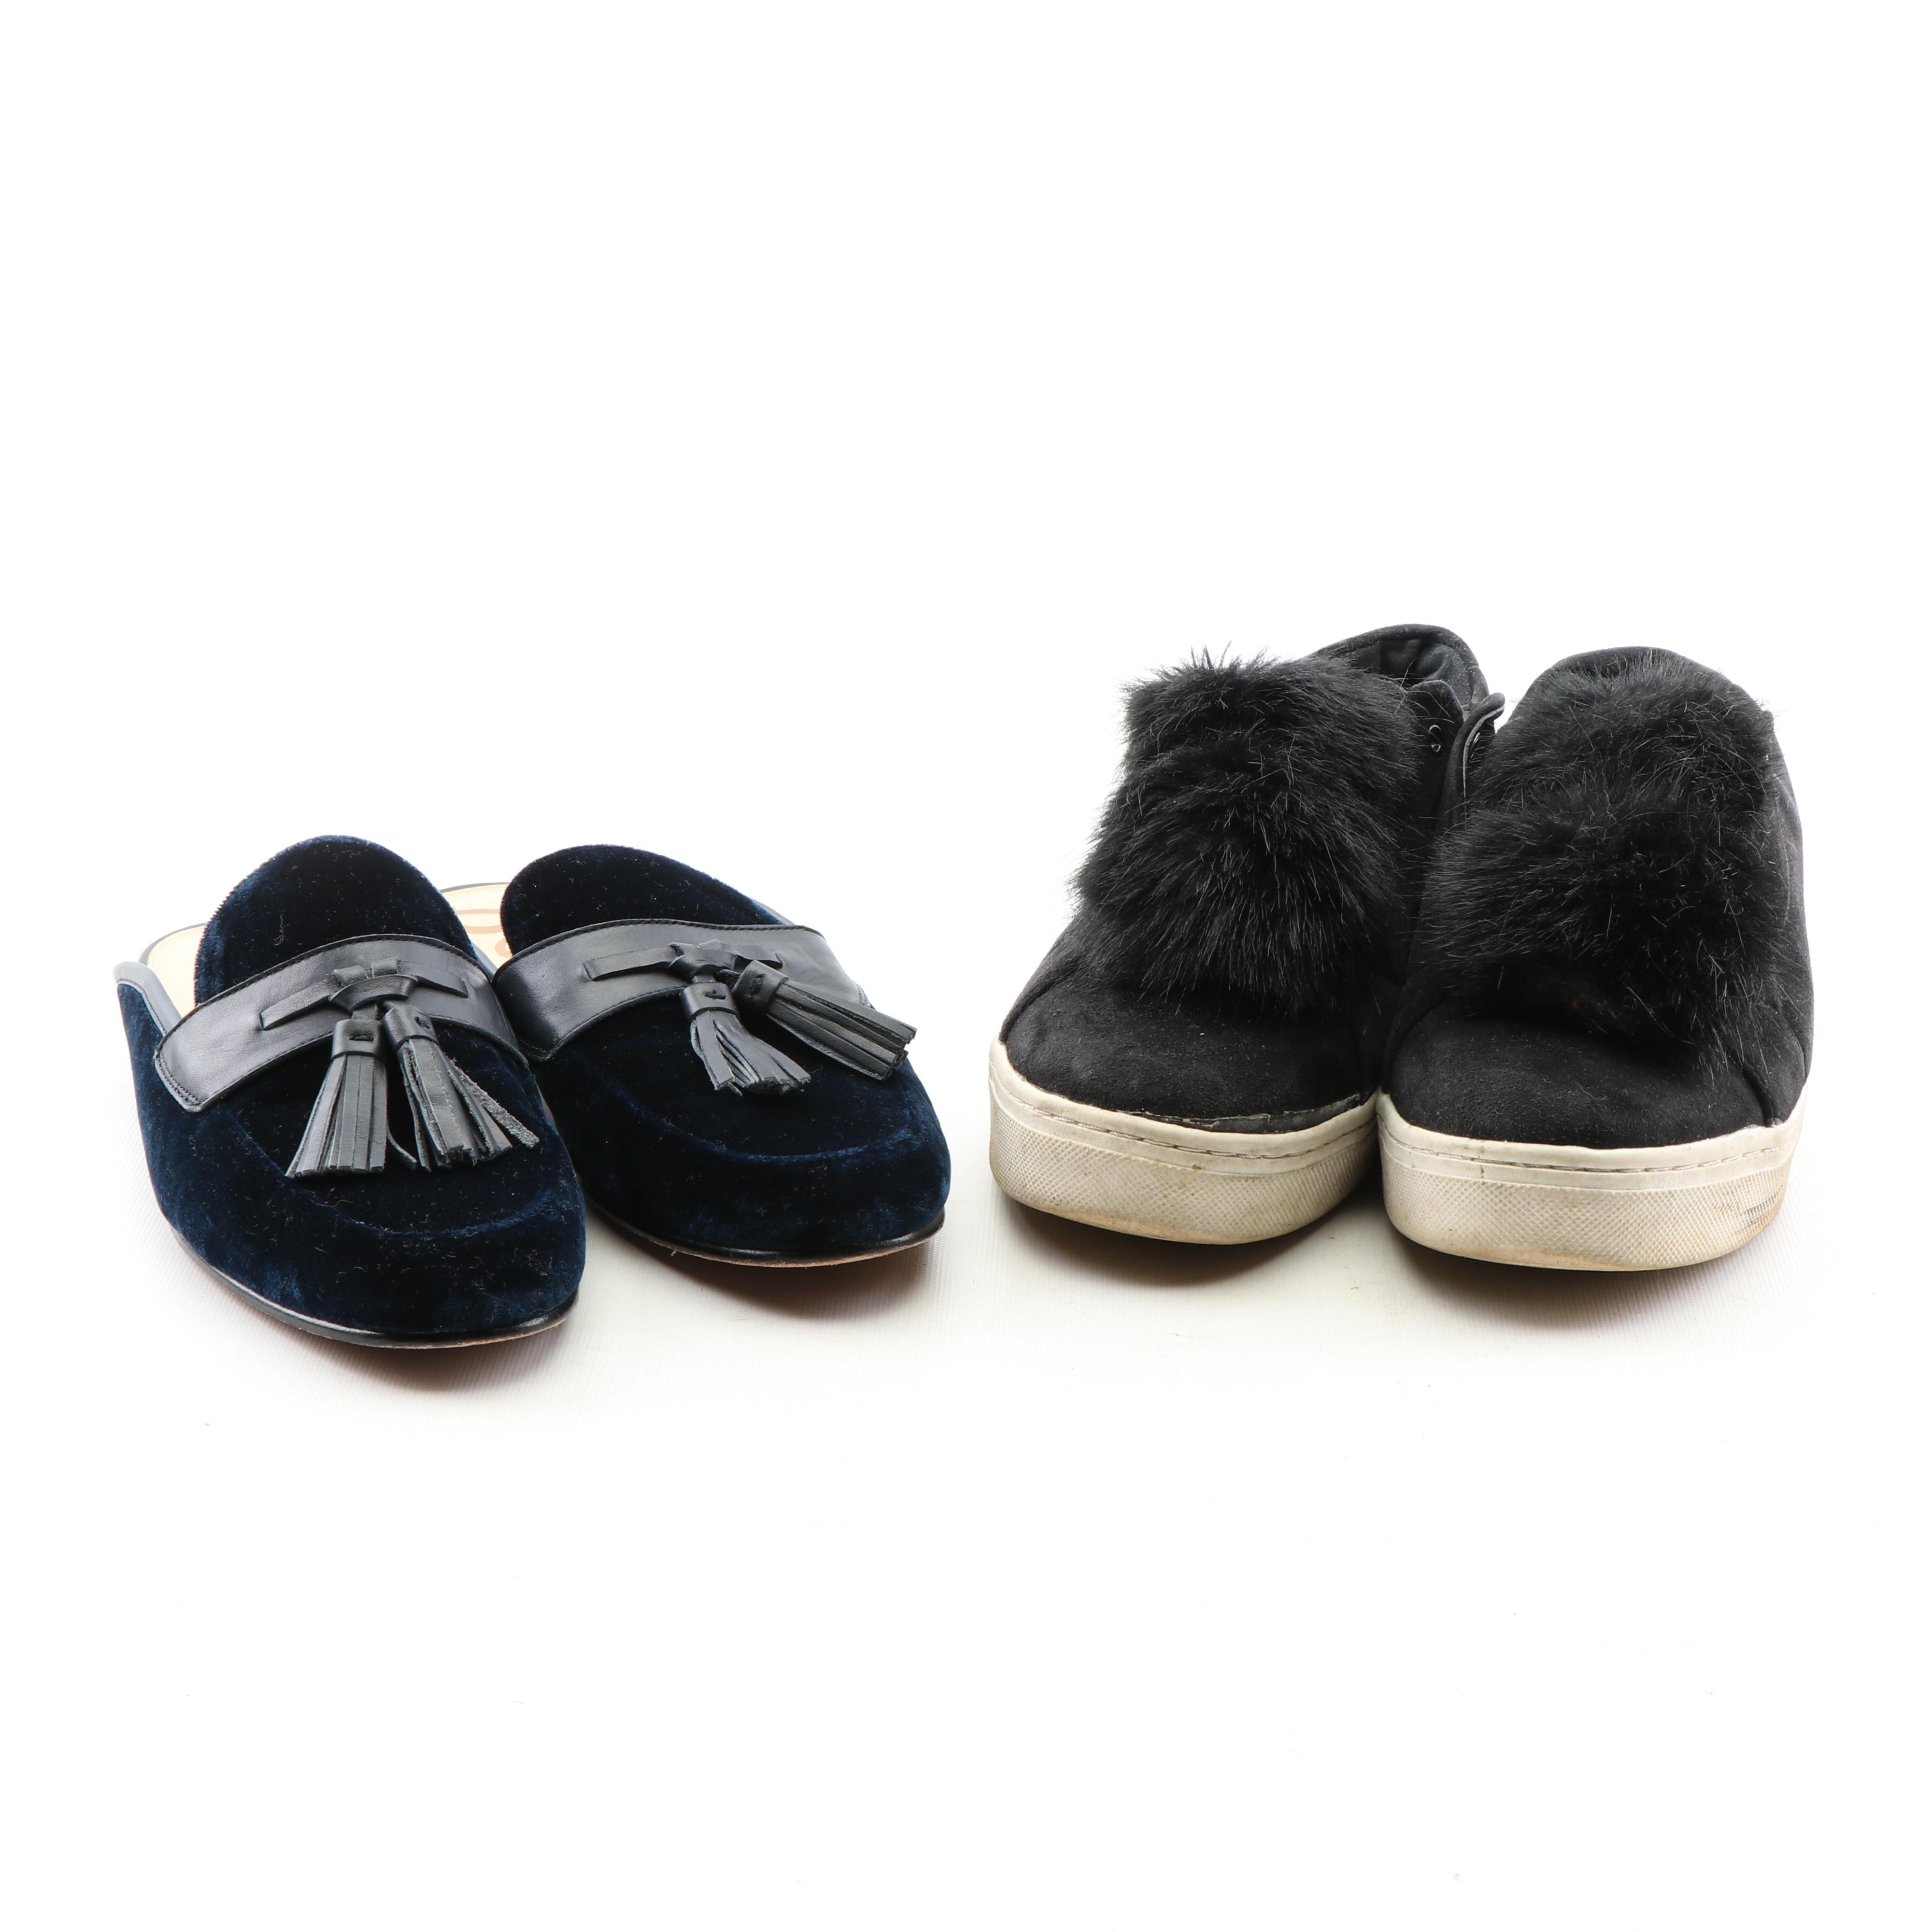 Sam Edelman Blue Velvet Loafer Mules and Black Suede Sneakers with Faux Fur